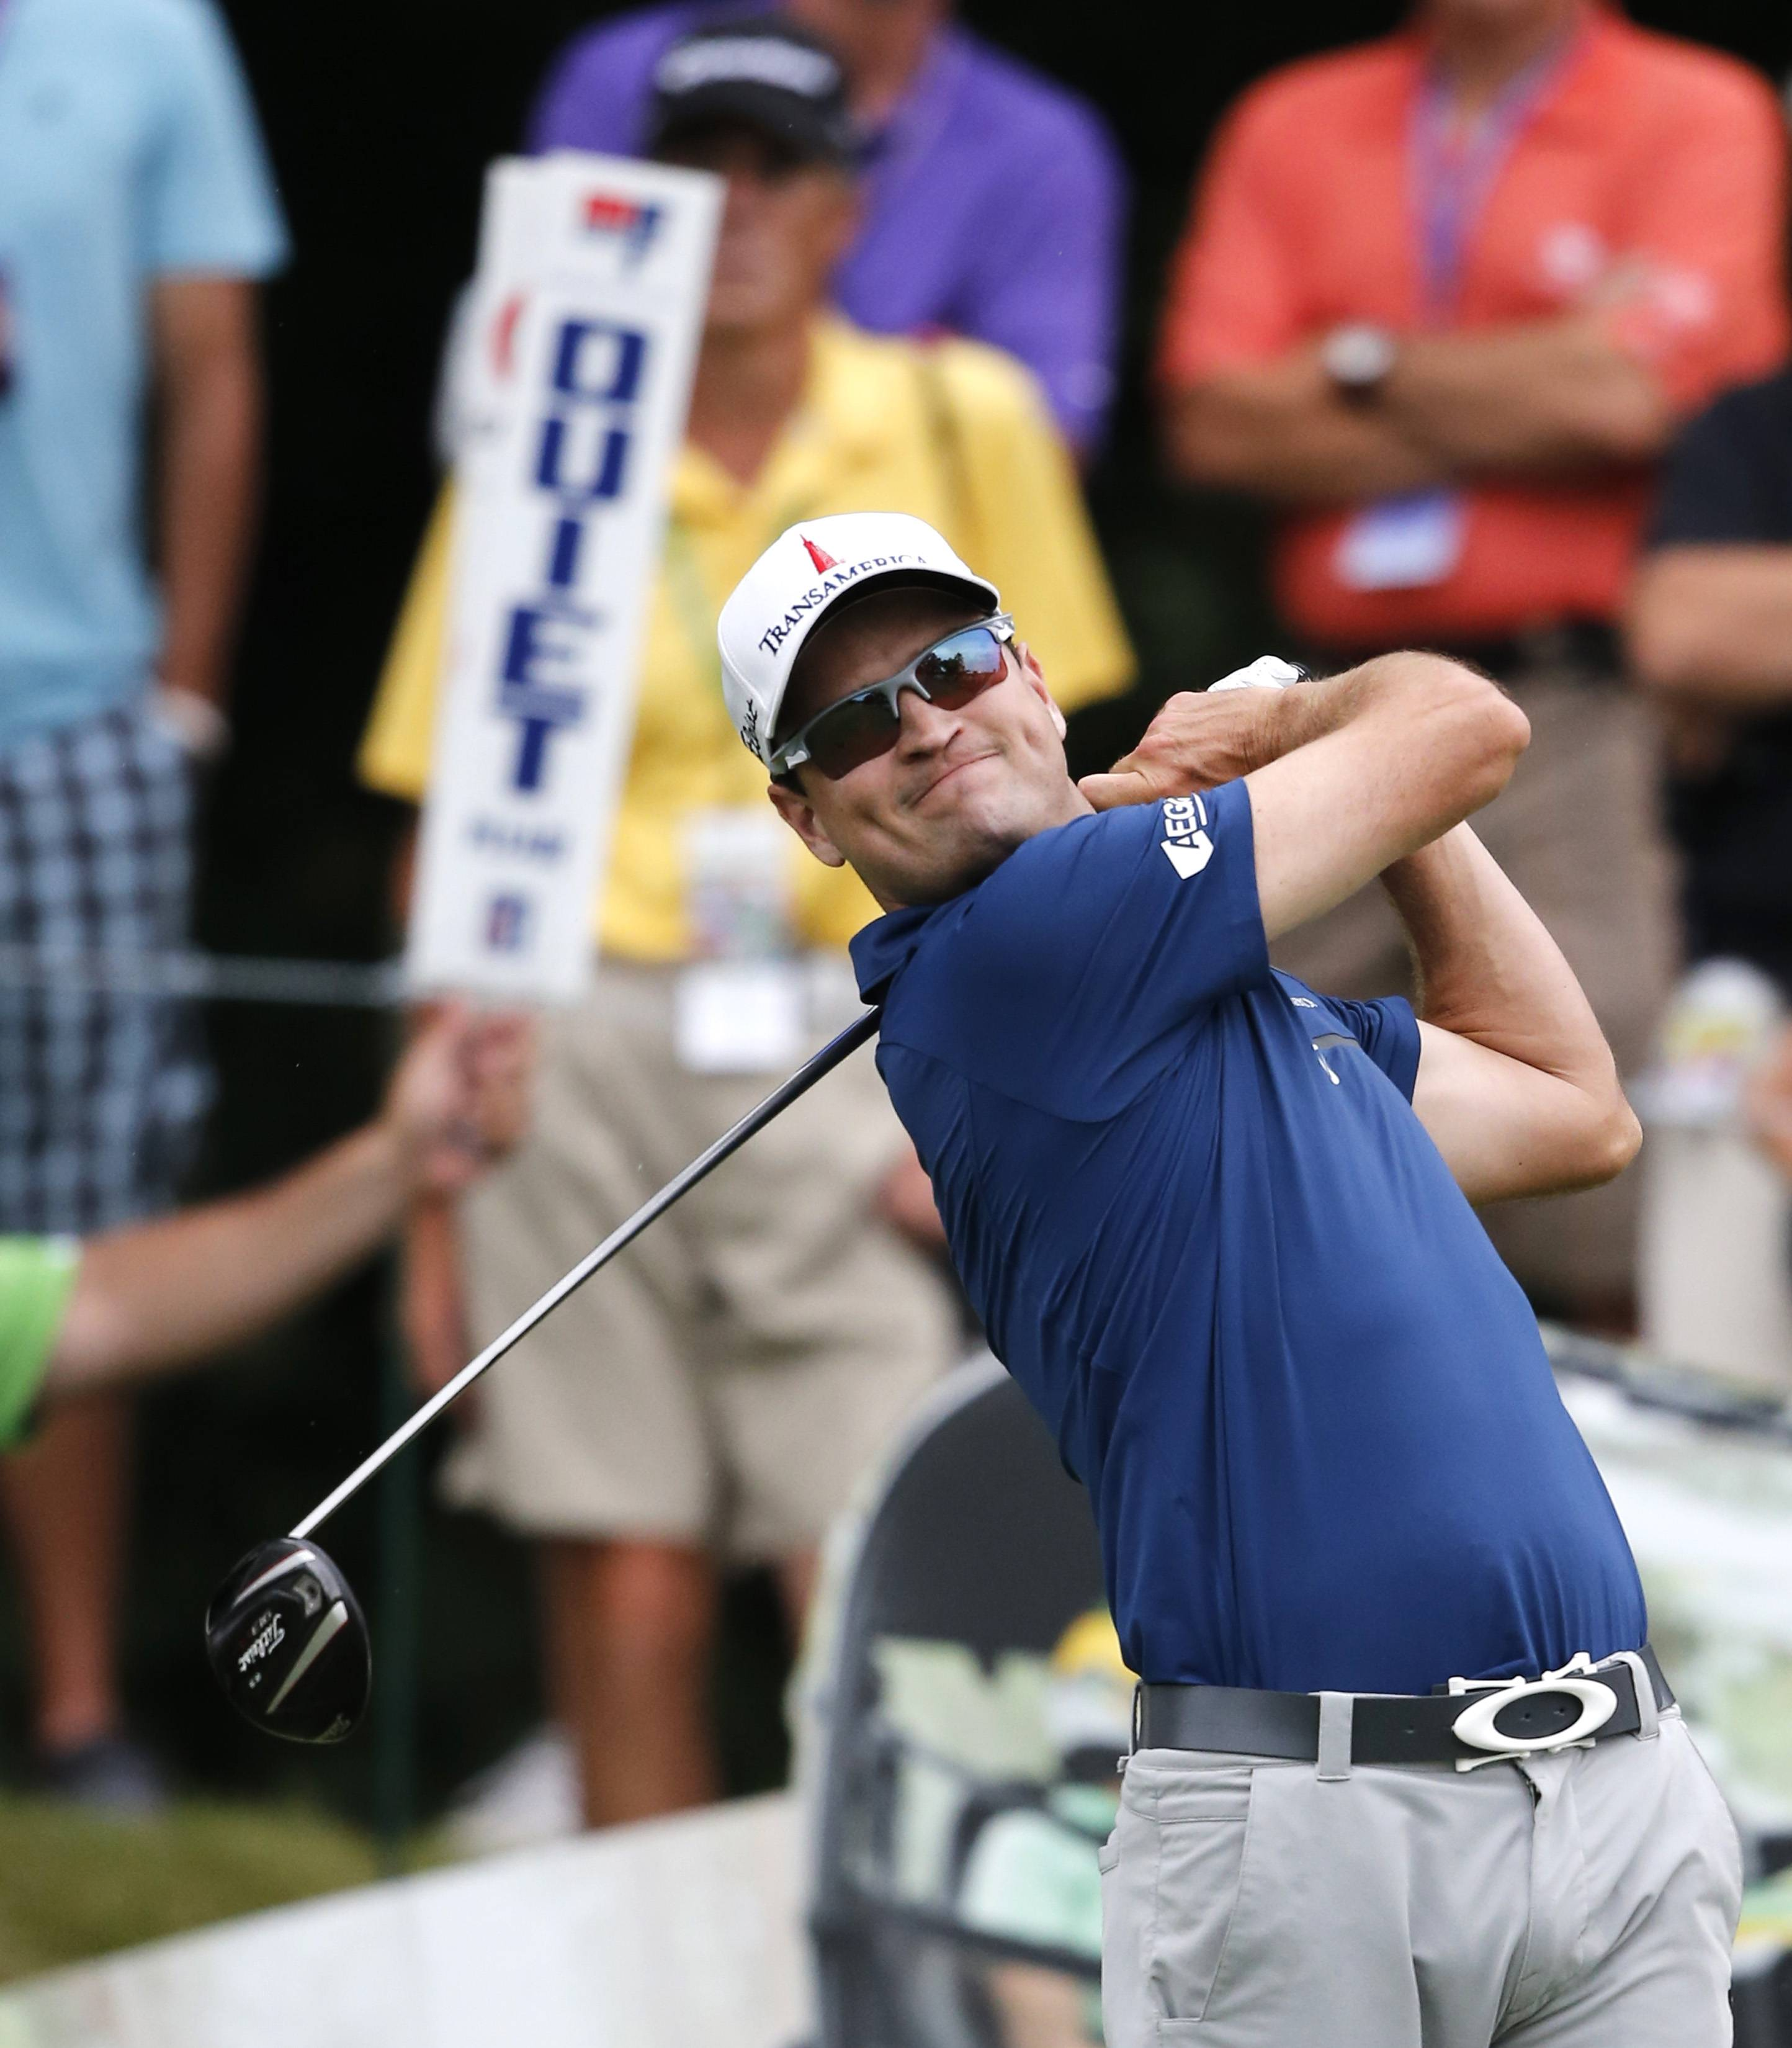 Cedar Rapids native Zach Johnson is the co-leader after the second round of the John Deere Classic on Friday at TPC Deere Run in Silvis, Ill.